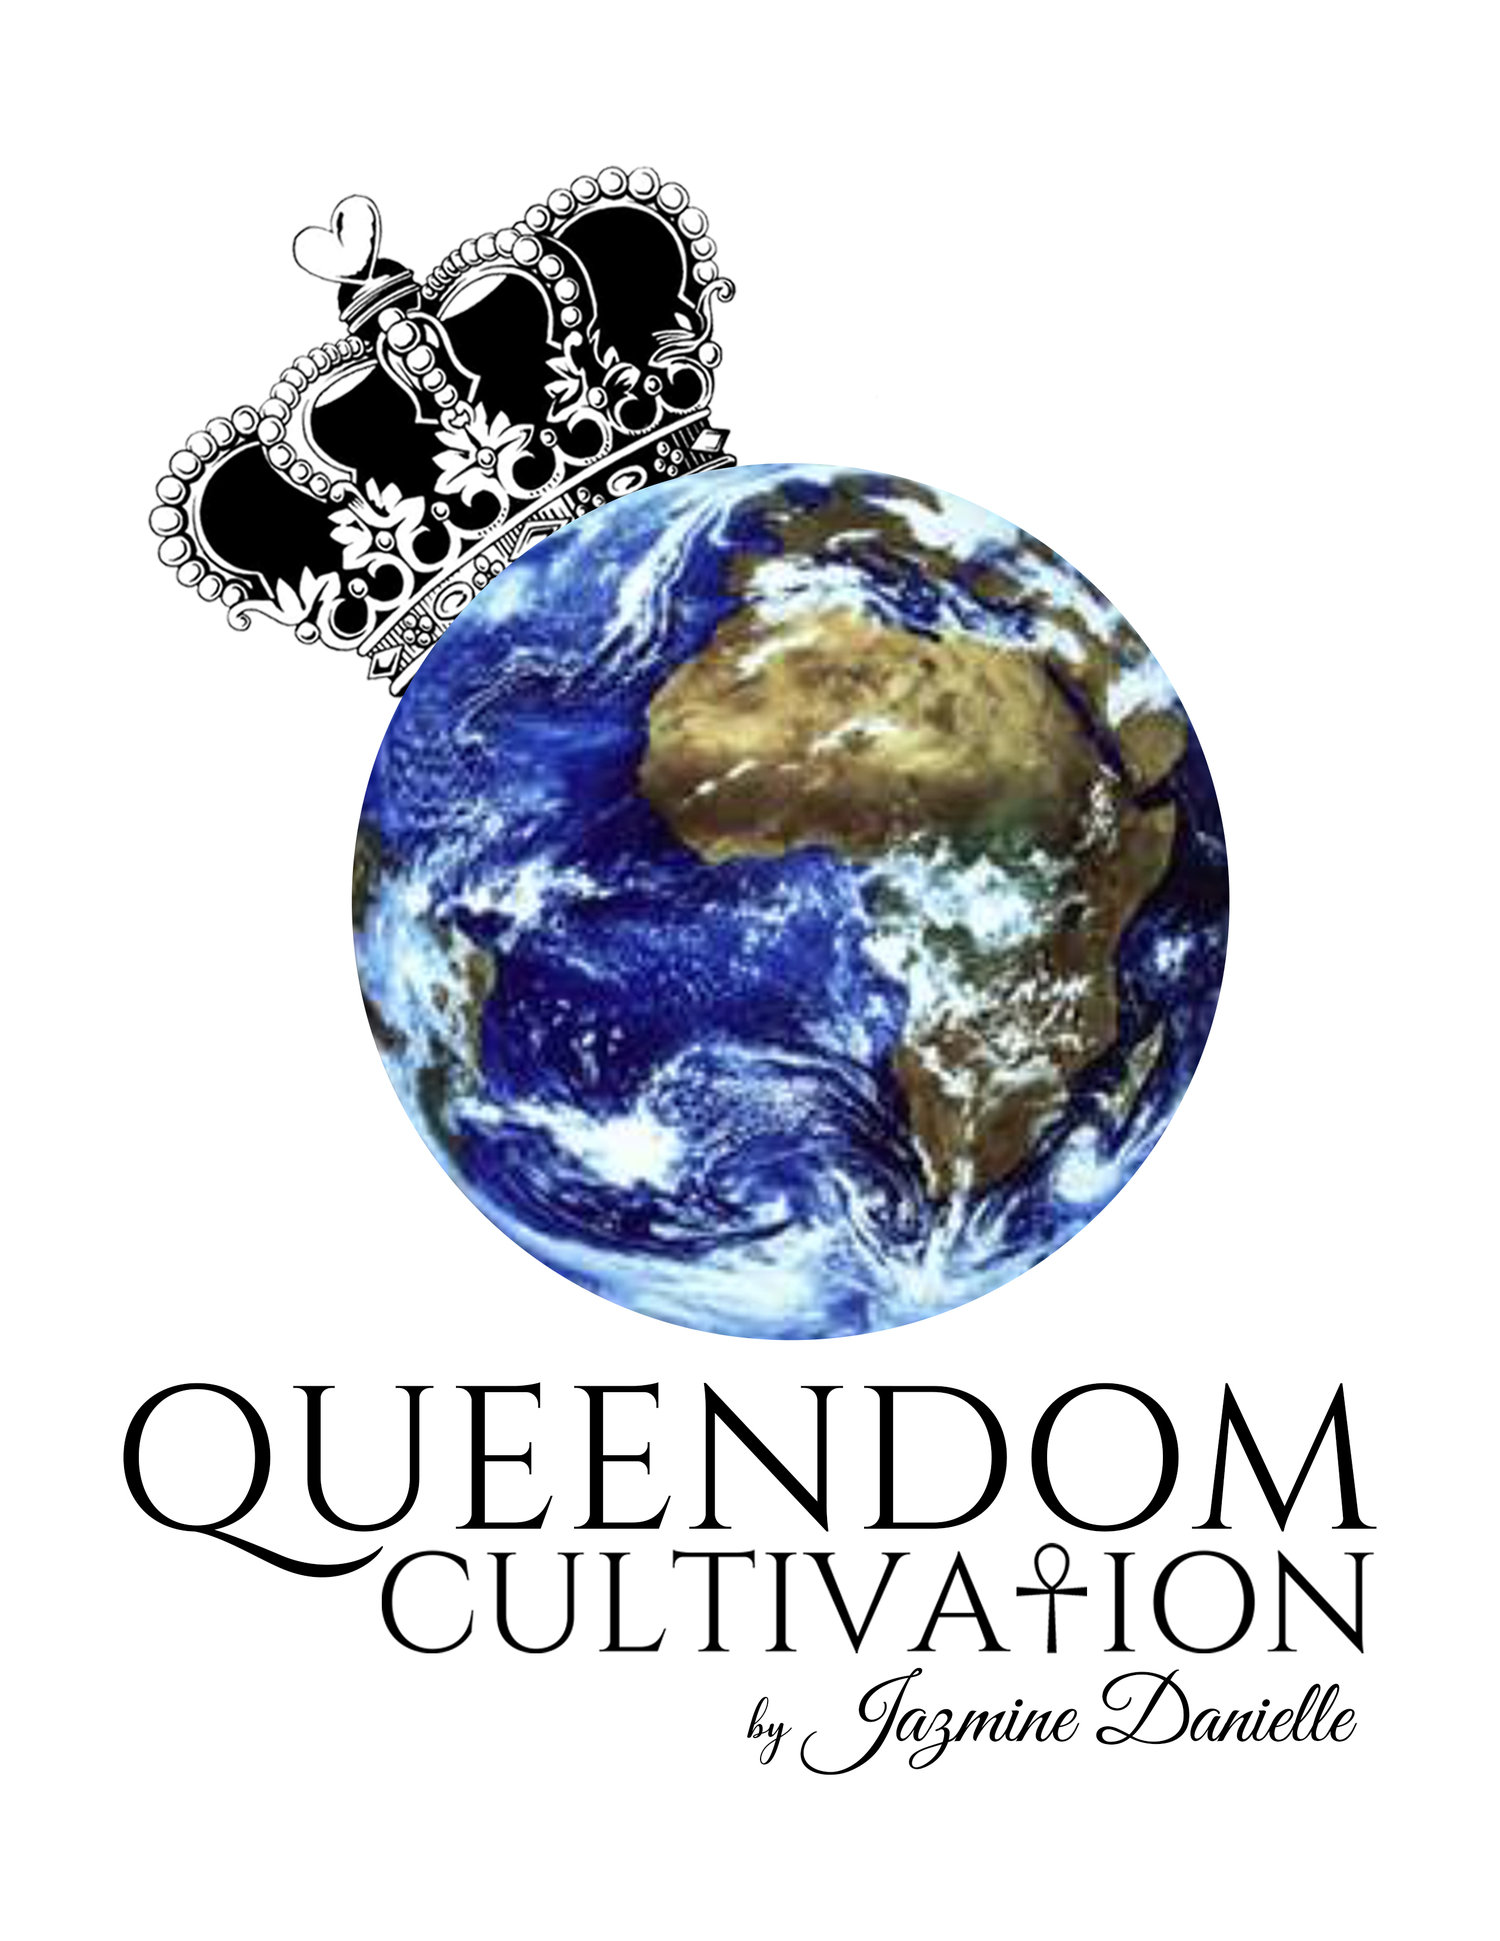 Queendom Cultivation